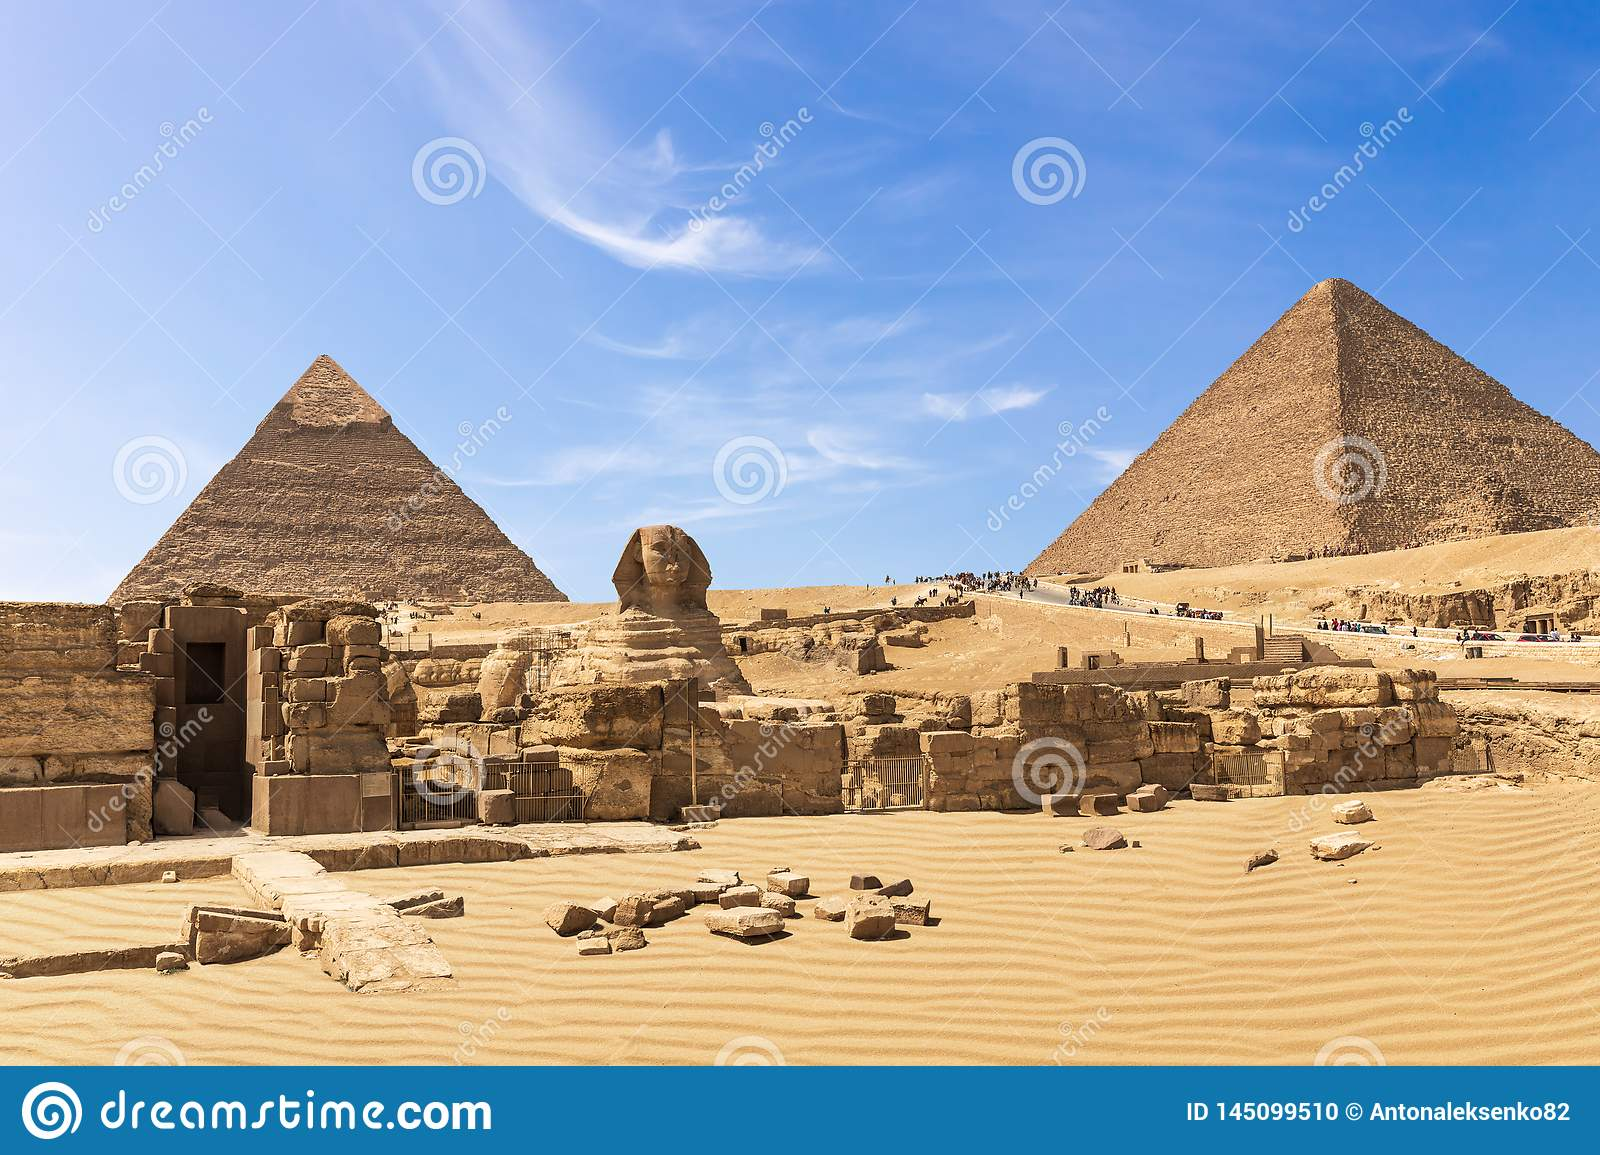 The Great Pyramids Of Giza Complex: The Sphinx, The Pyramid Of